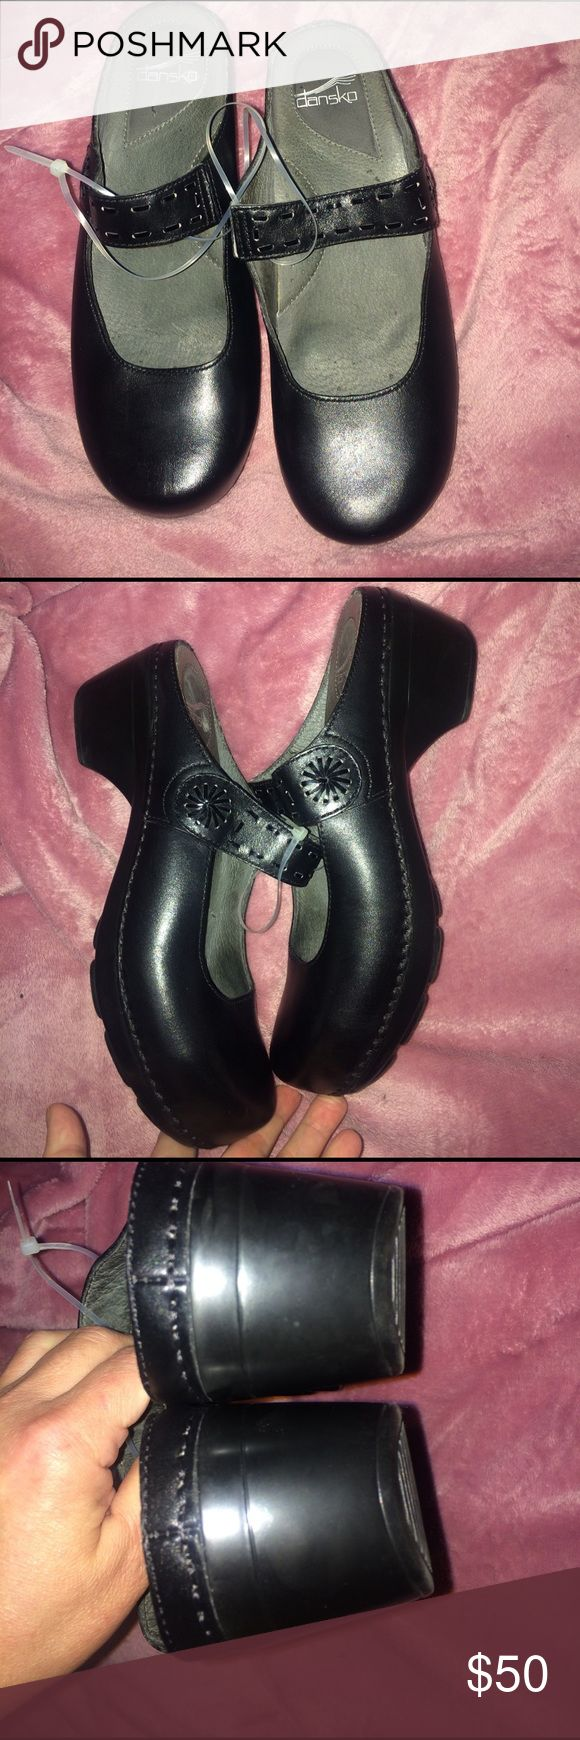 Dansko professional clogs light weight ,l100% genuine leather upper and lining , super soft and comfy for nursing job , your feet feel like walking  in The clouds , worn one time in the hospital ,they look brand new size European 40 USA size 10 , the first picture describe how Dansko made their shoes to be safe , healthy and convenable to our feet during long walks or all day standing up jobs Dansko Shoes Mules & Clogs